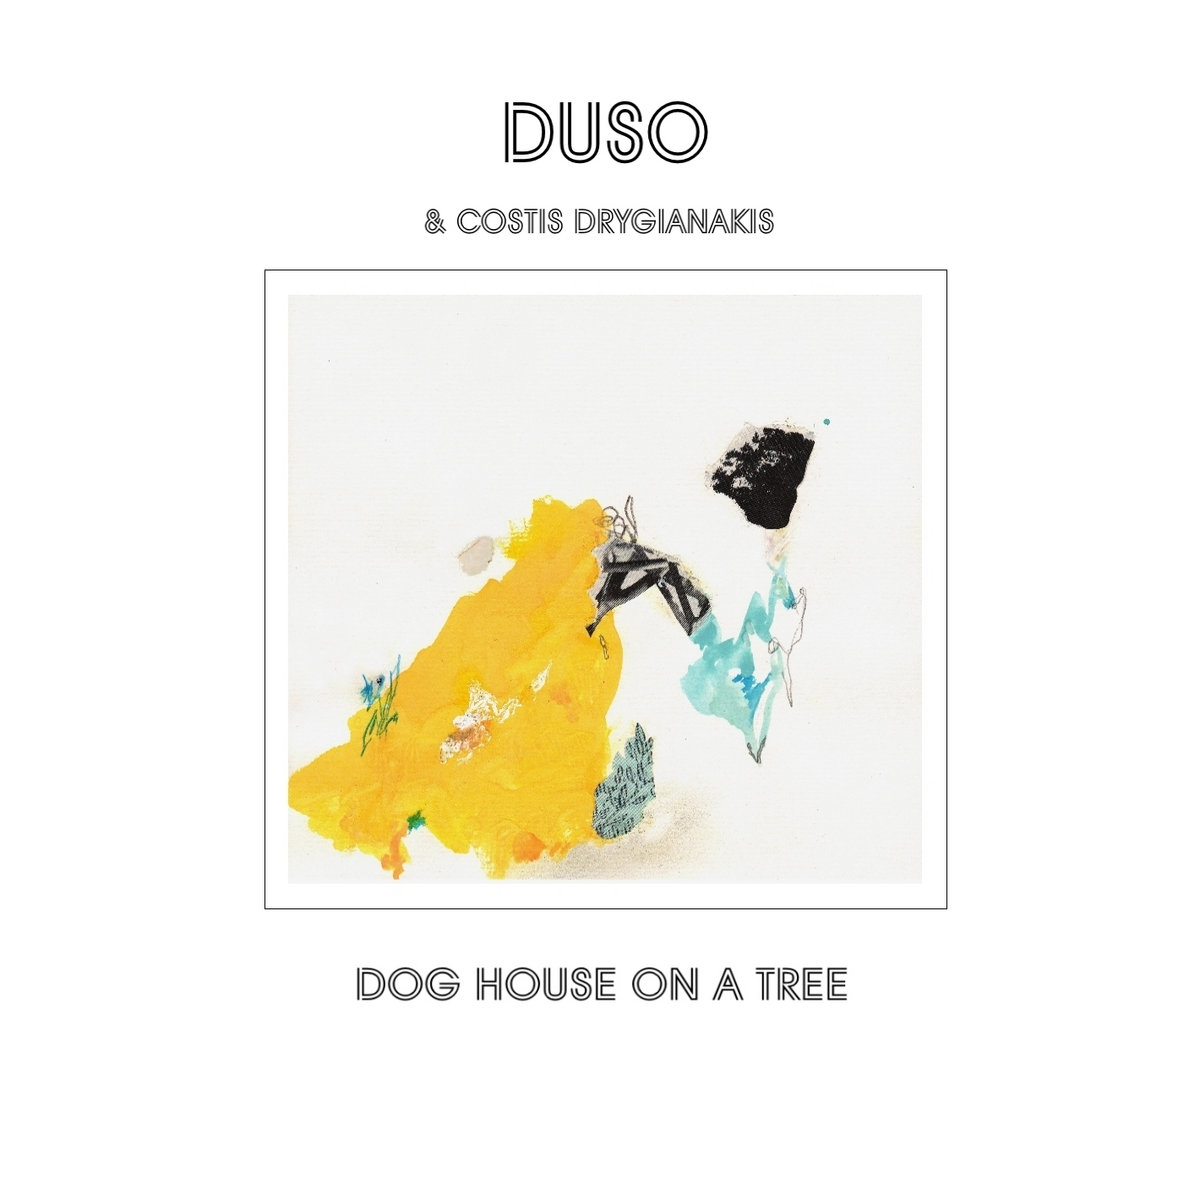 duso feat. Costis Drygianakis - Dog House on a Tree